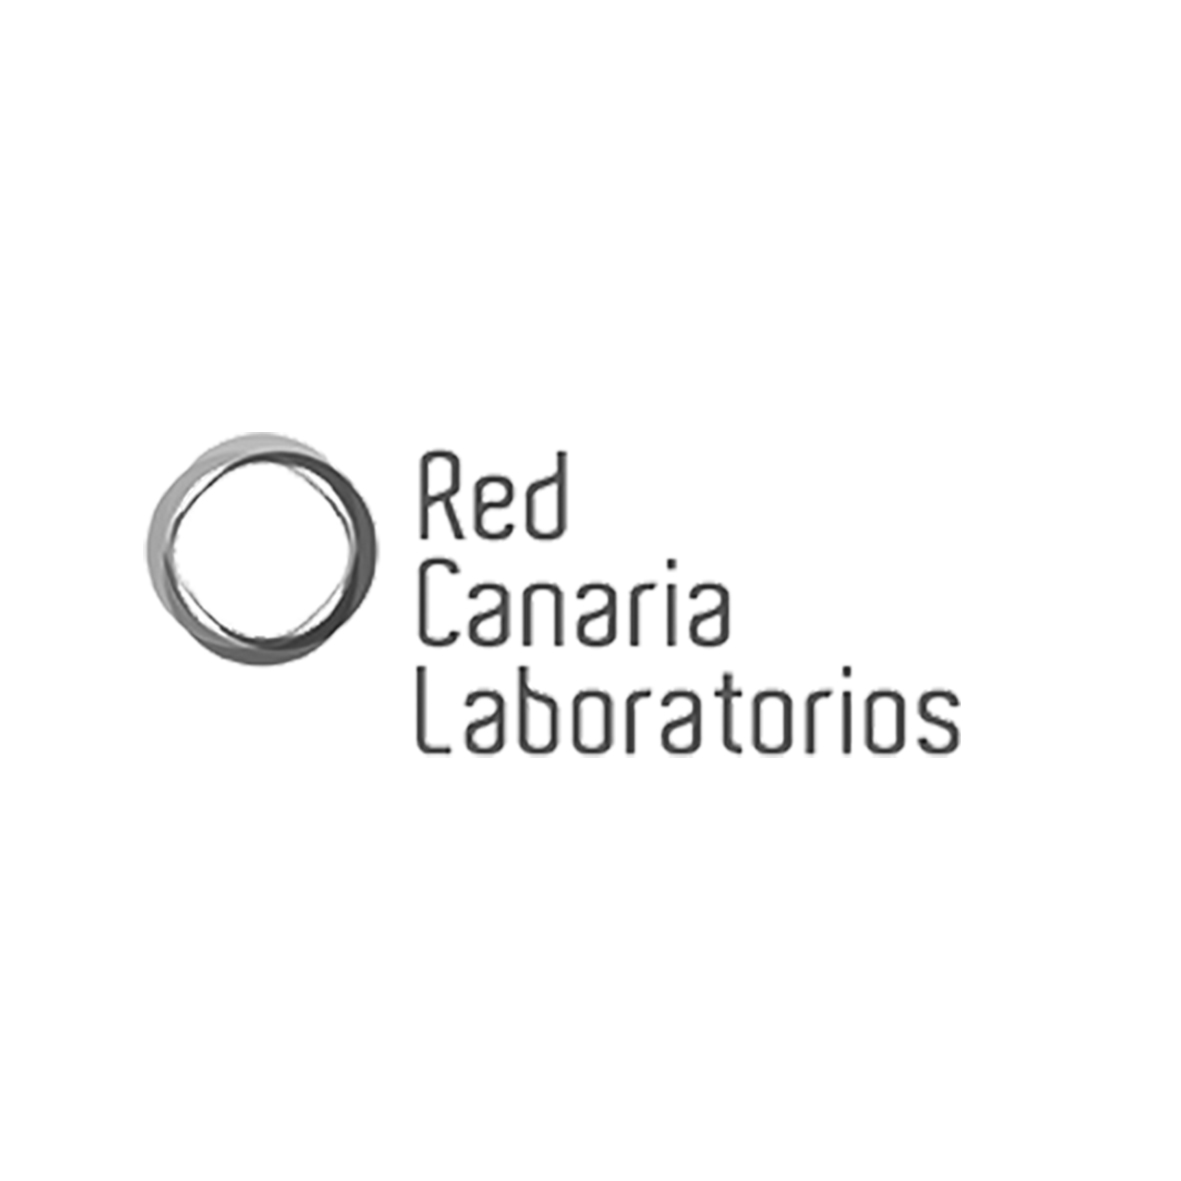 Red Canaria Laboratorios